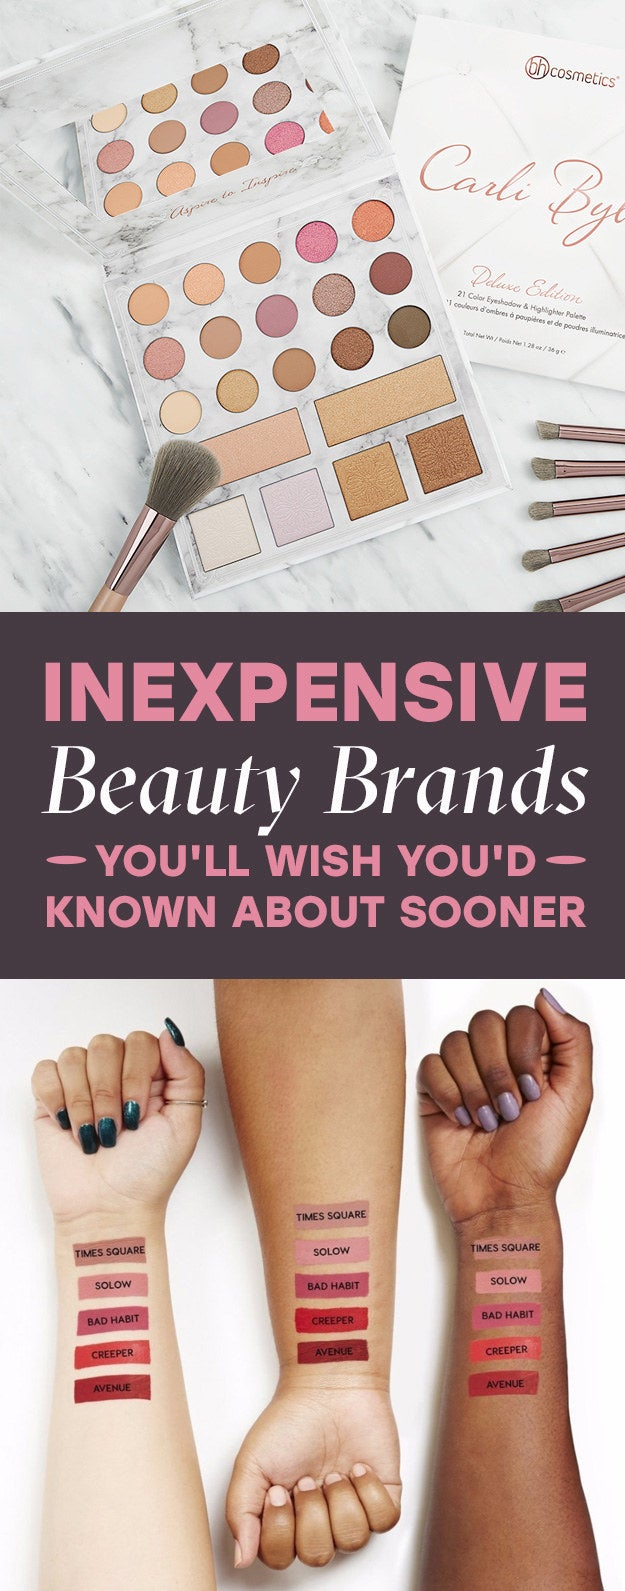 19 inexpensive beauty brands you u0027ll fall in love with